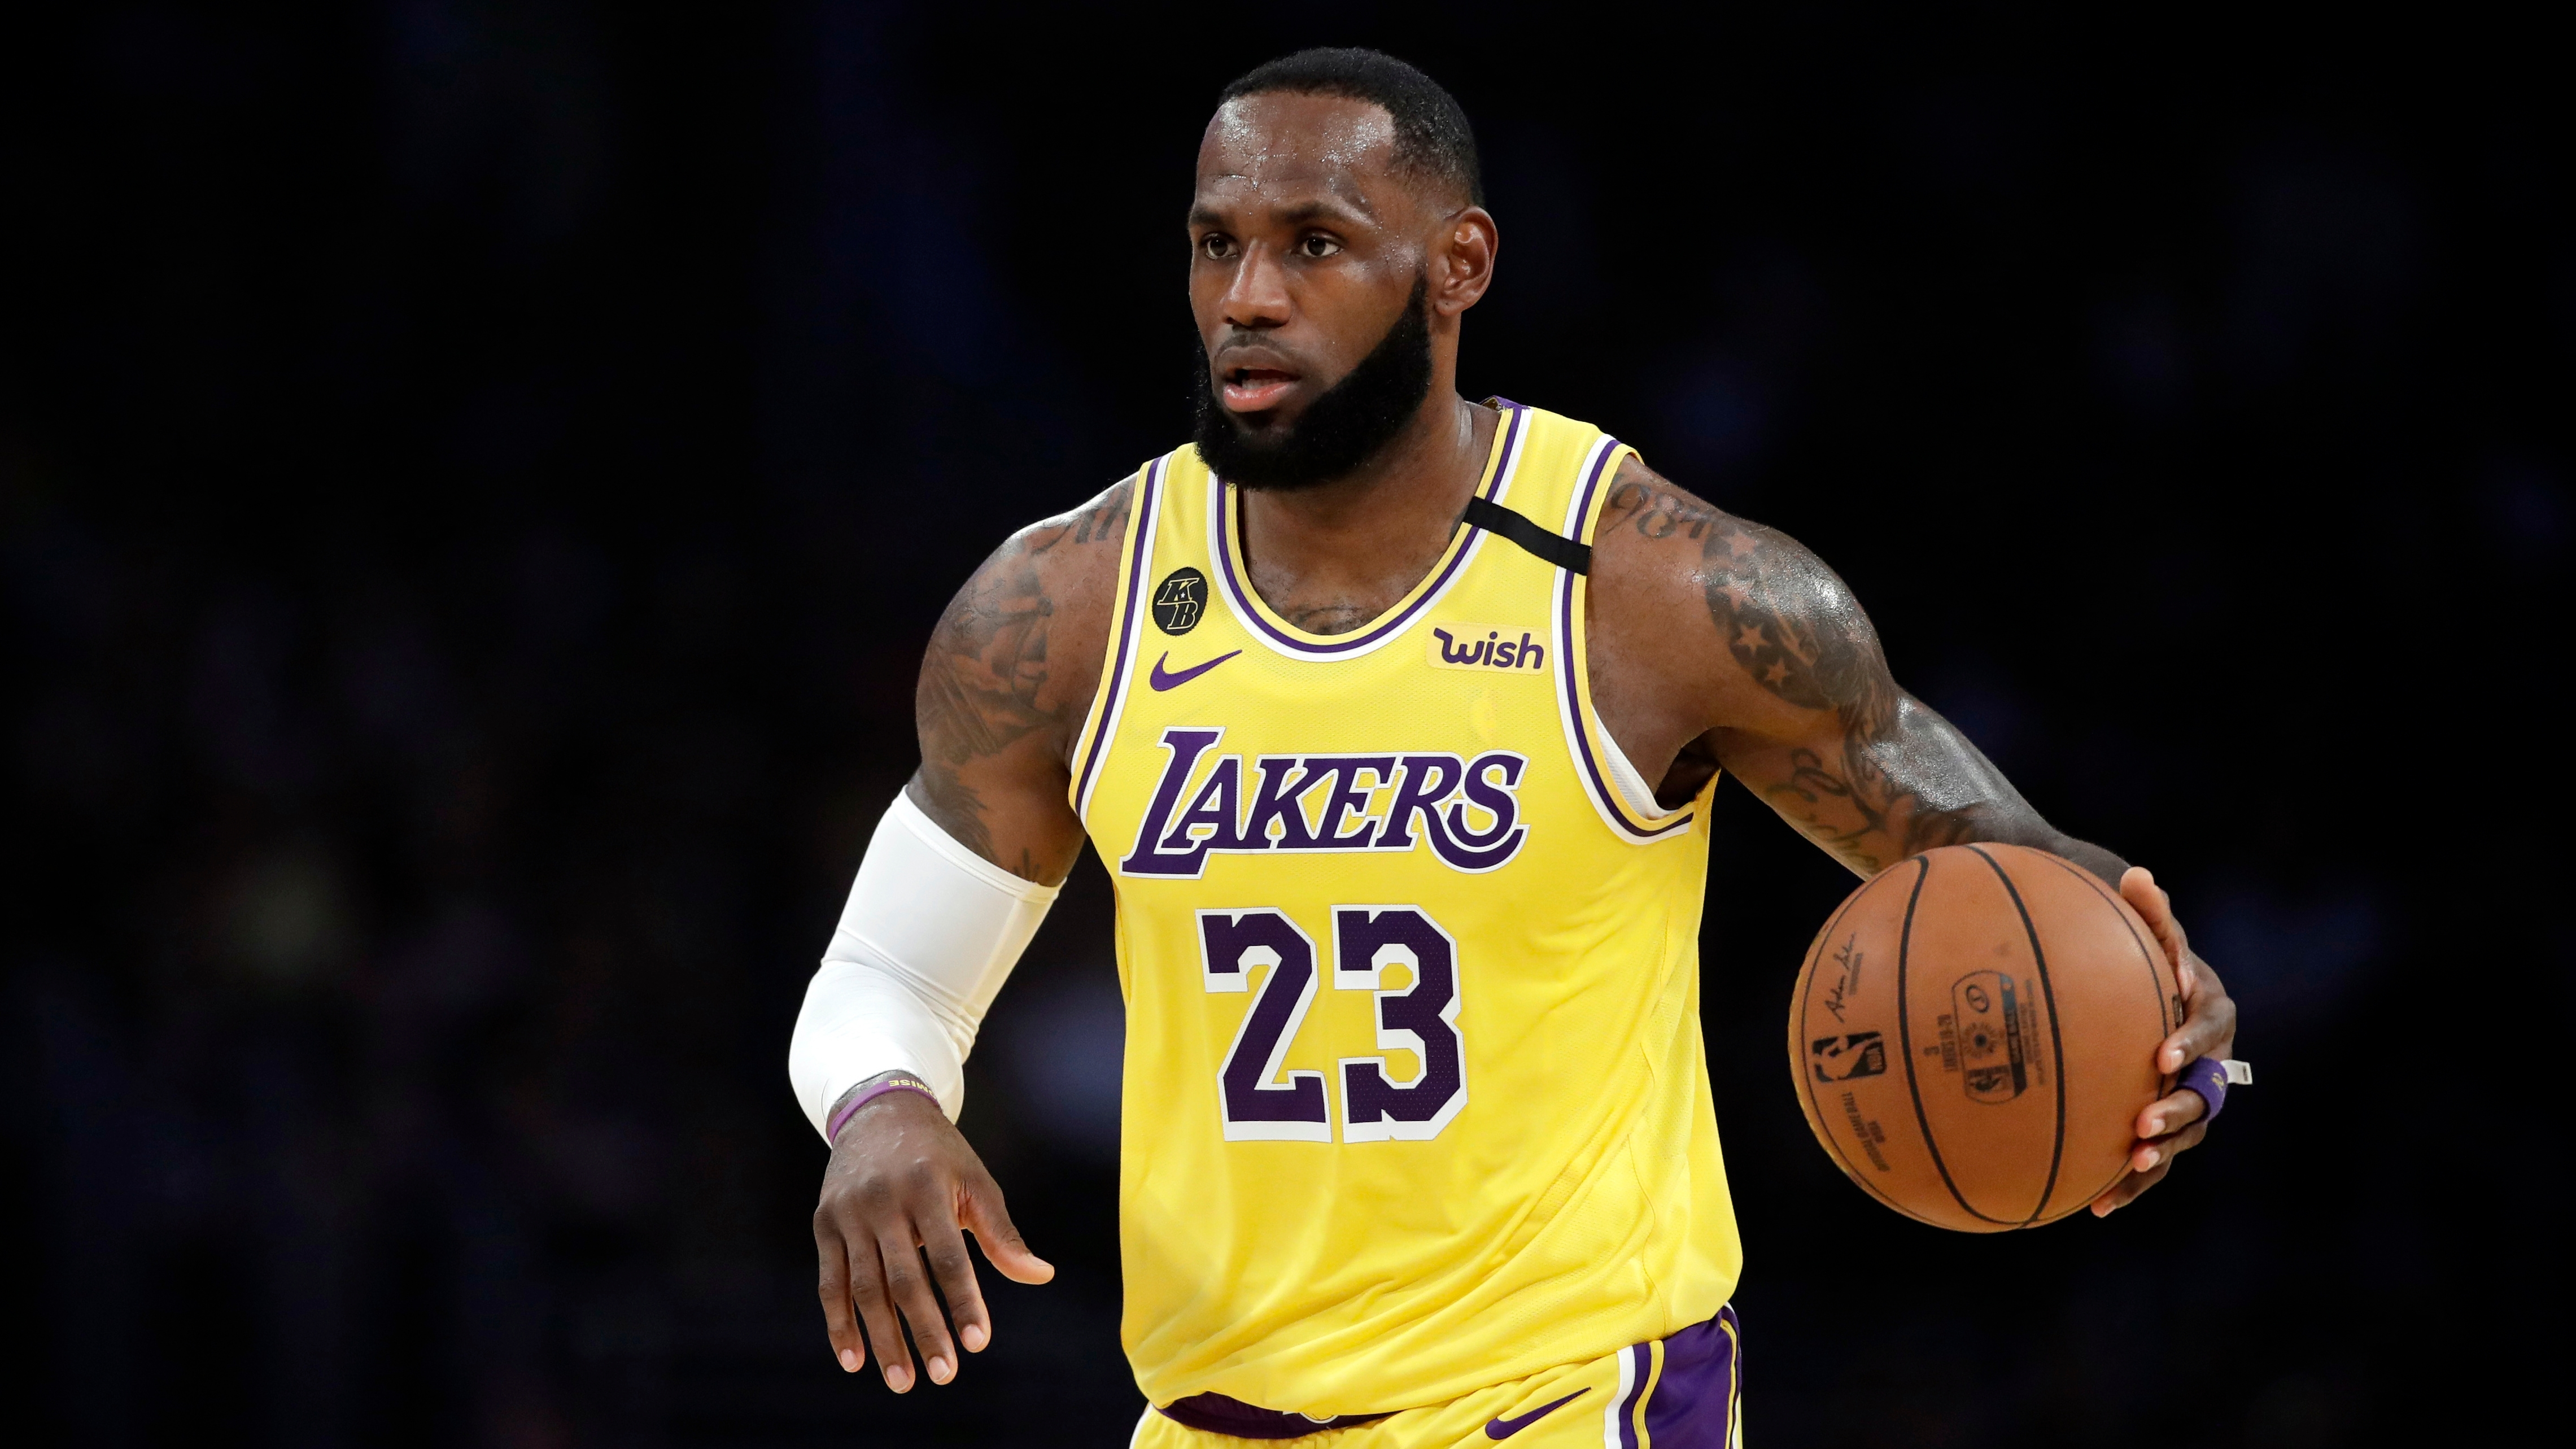 Los Angeles Lakers LeBron James won't wear social justice message on Lakers jersey